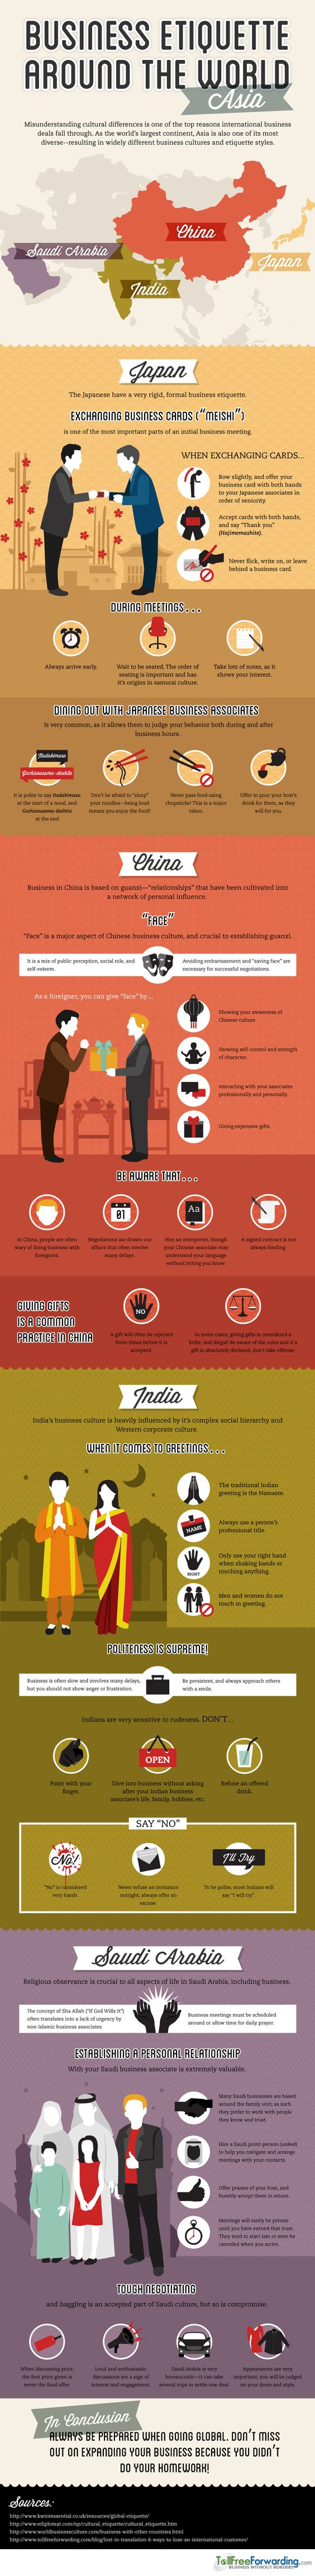 Thinking of working internationally? Or do you work for a global or multinational company? Heres an overview of basic #etiquette in some other countries! #international #infographic